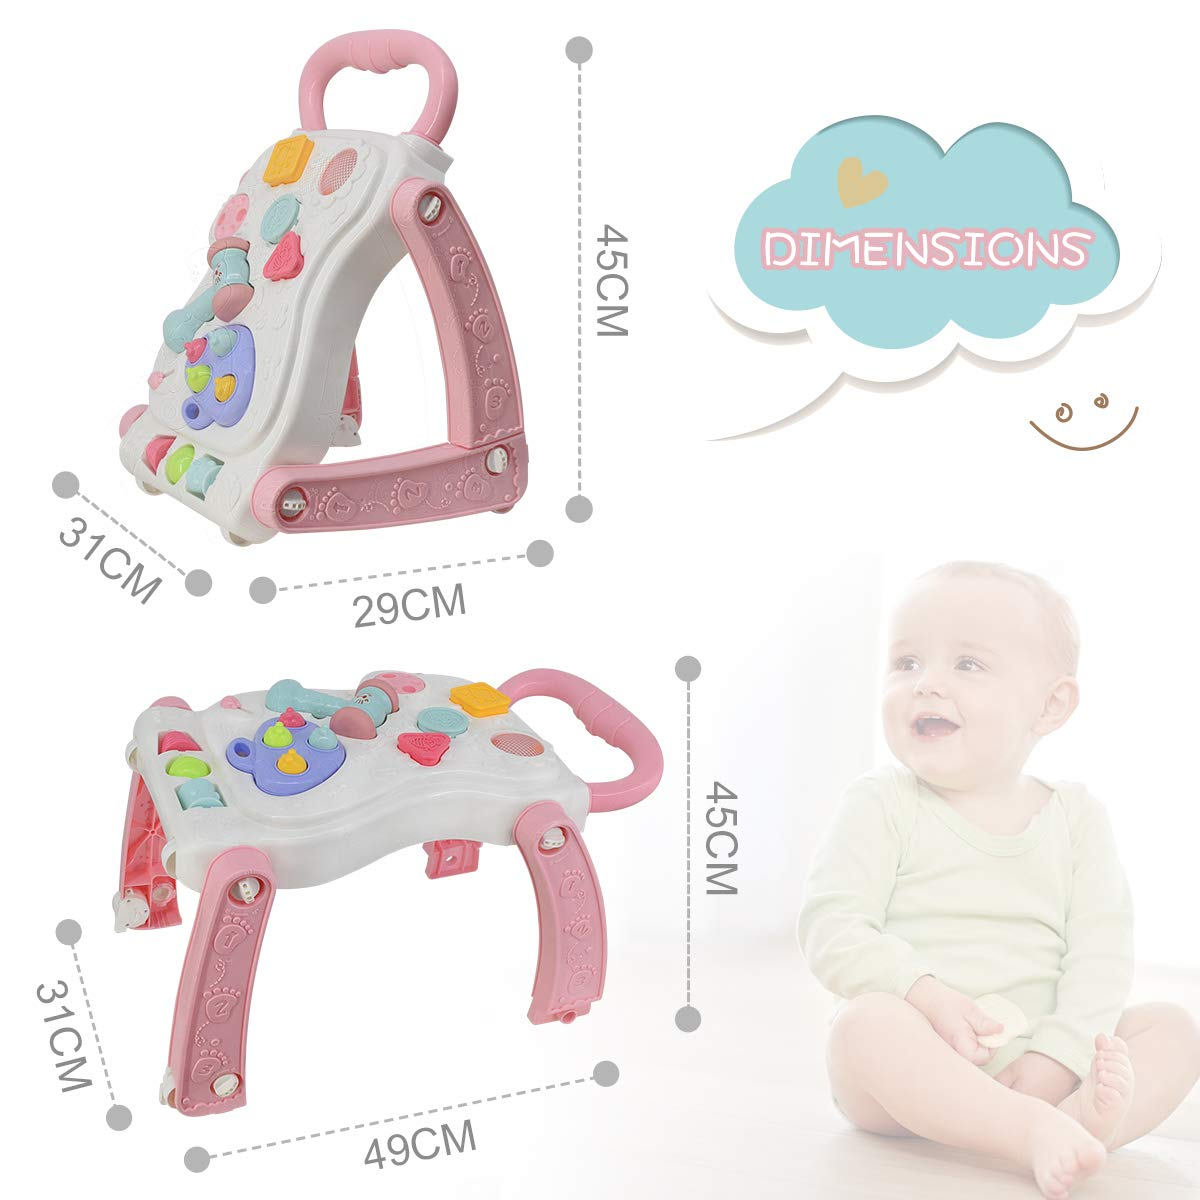 Pink FRUITEAM 2 in 1 Baby Sit-to-Stand Walker Entertainment Table Push Toy for Toddlers Interesting Whack-a-mole Game Activity Center